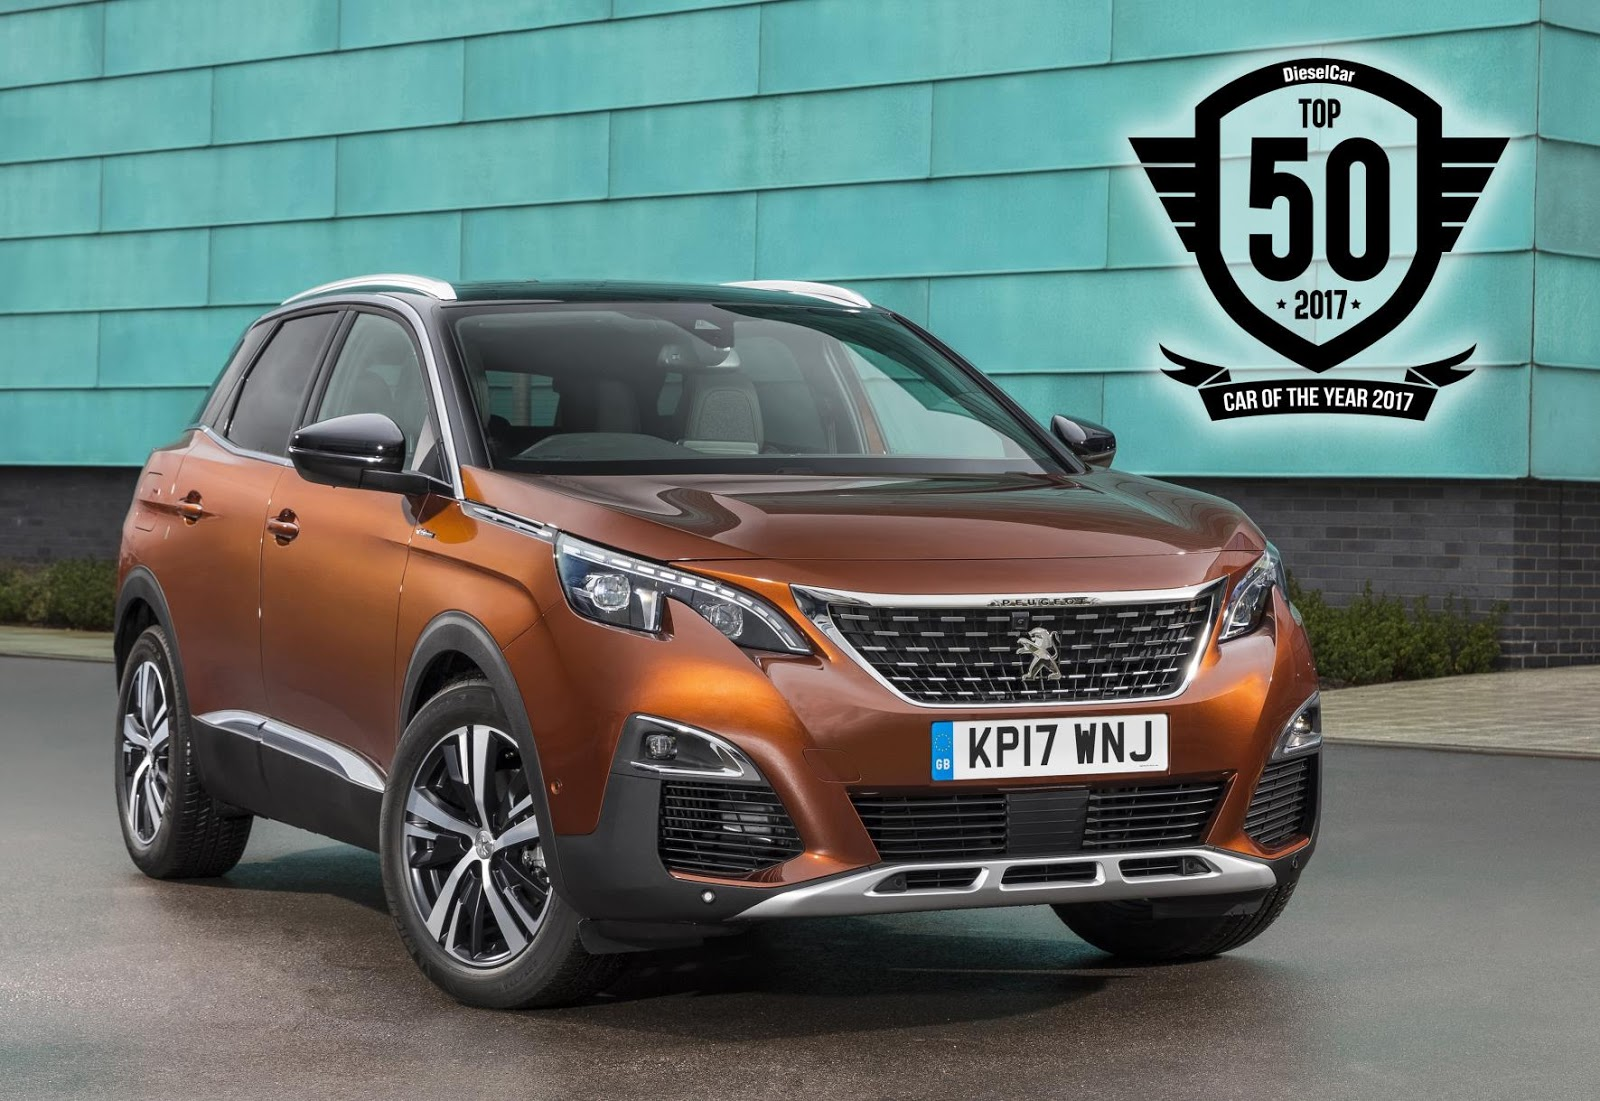 the motoring world the peugeot 3008 takes the main car of the year title at the dieselcar top. Black Bedroom Furniture Sets. Home Design Ideas